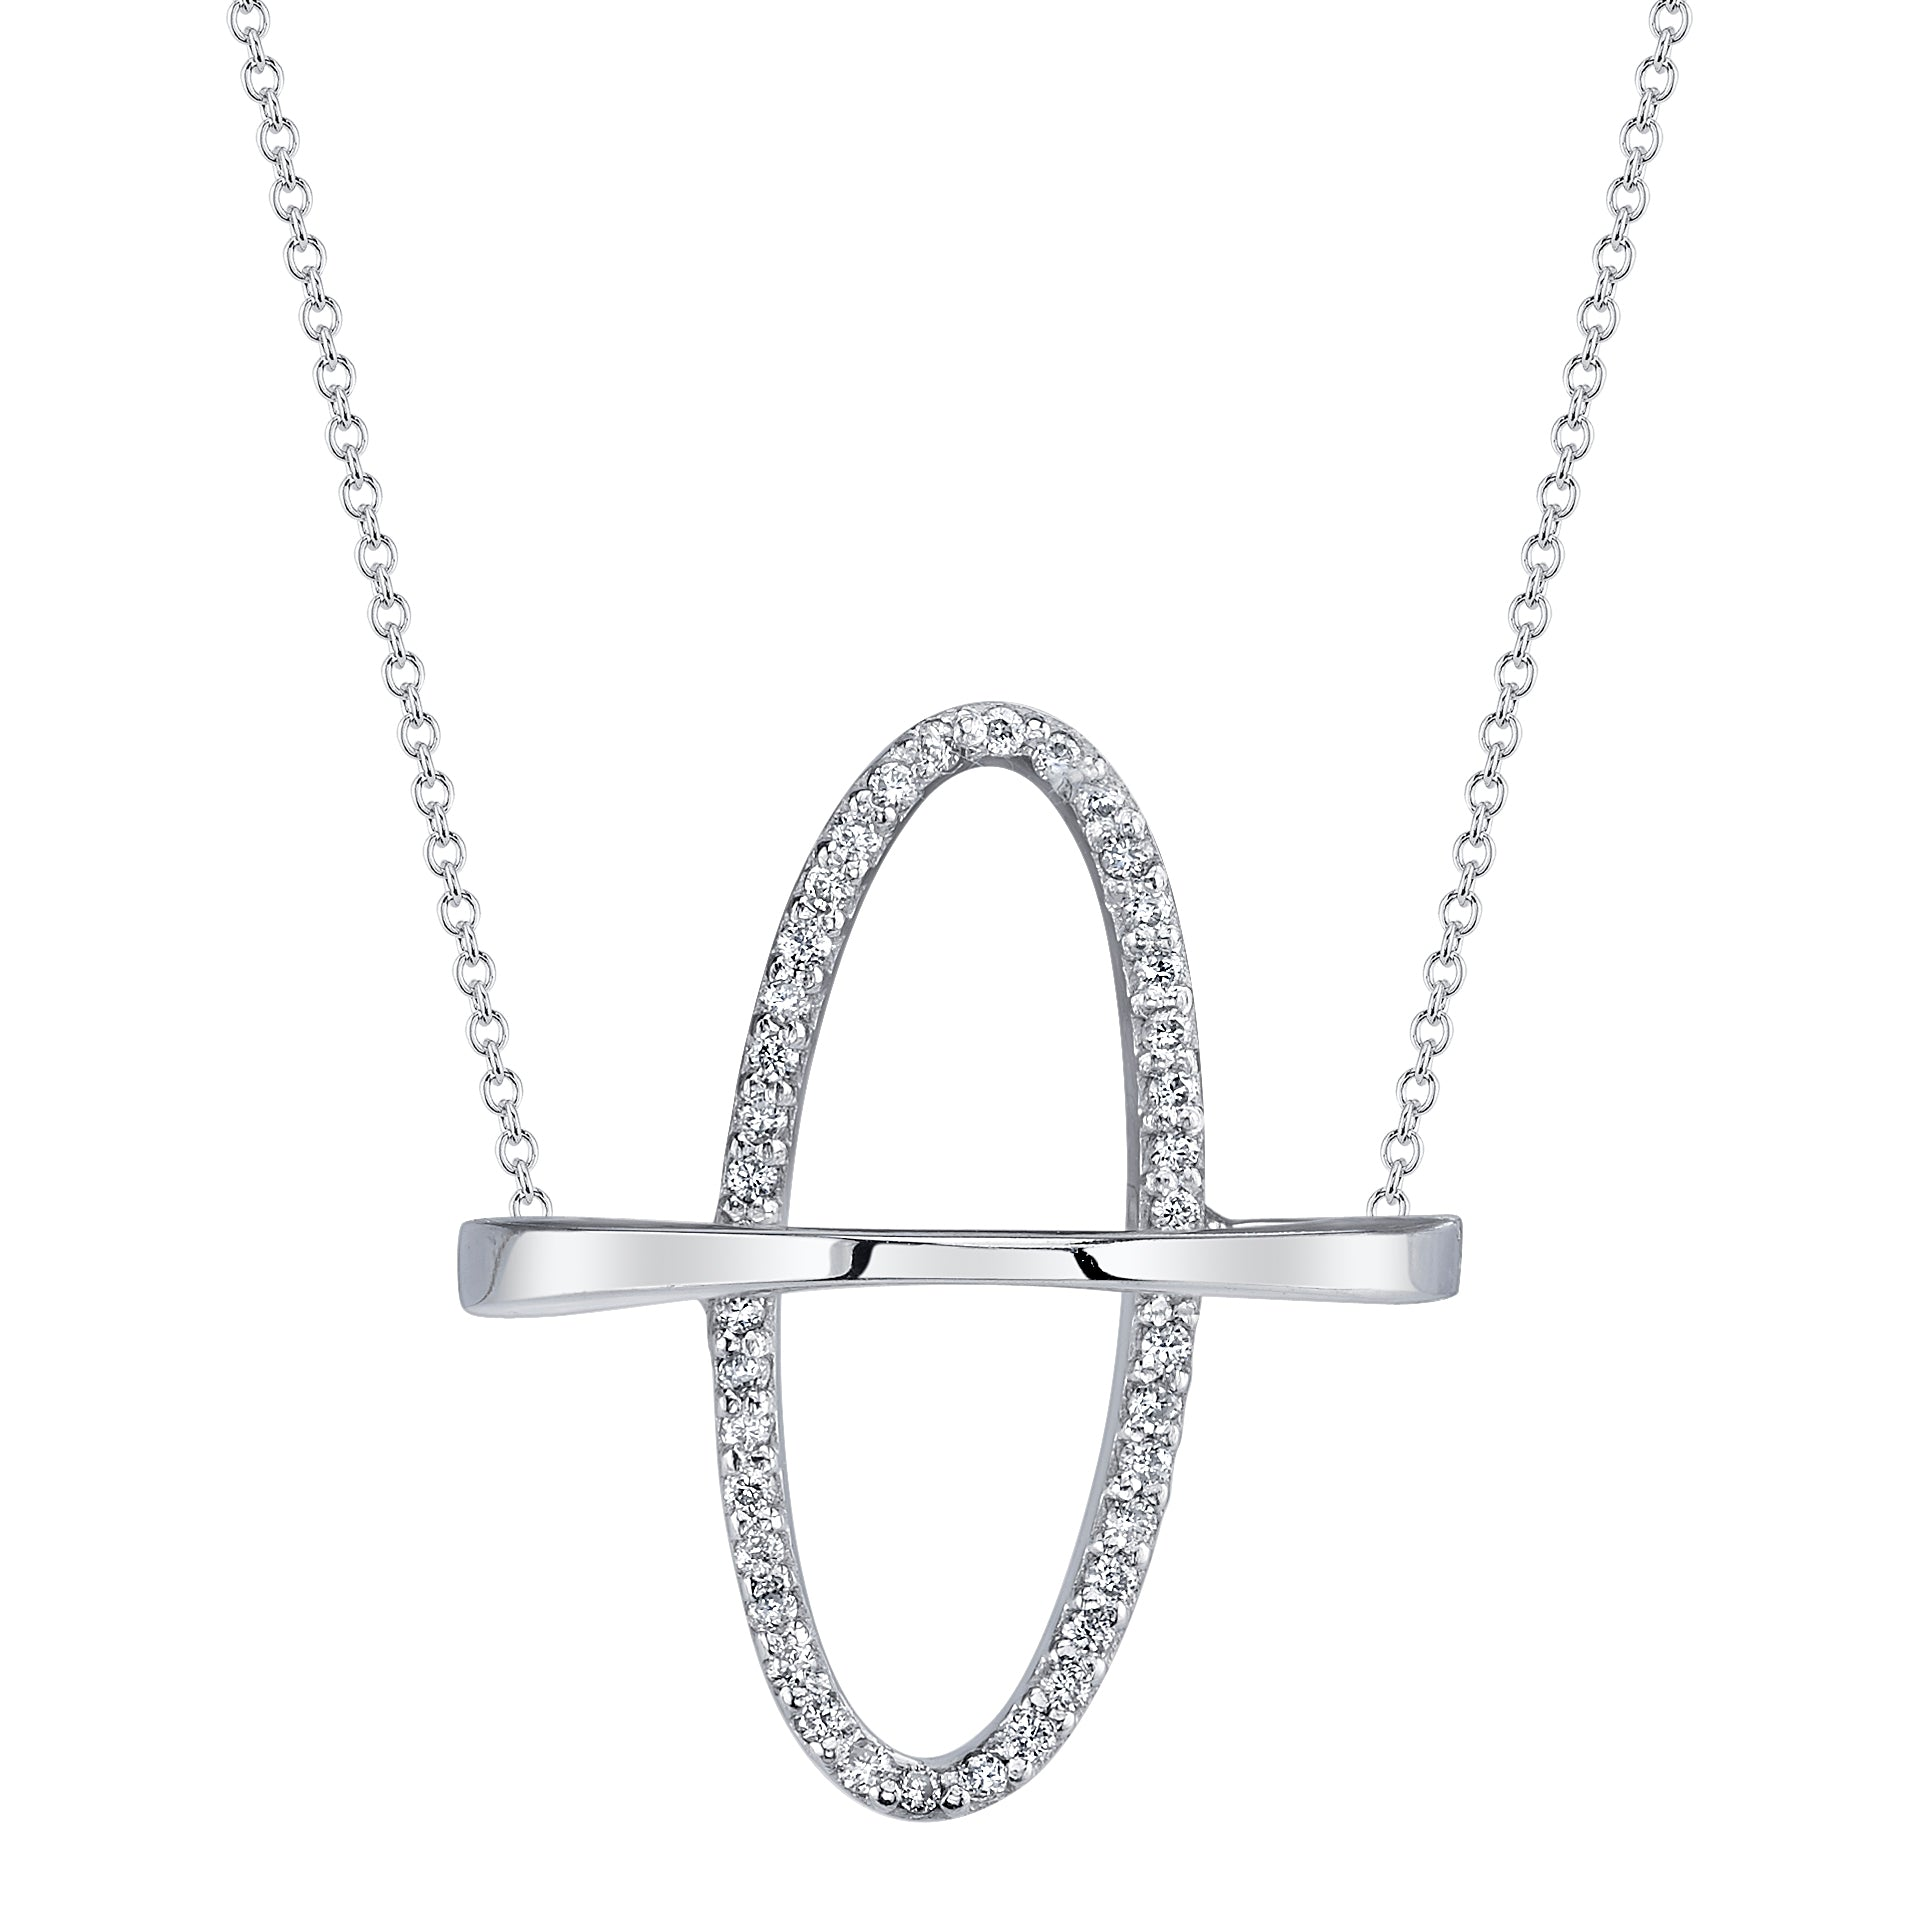 Arch Boreal Necklace With White Pavé